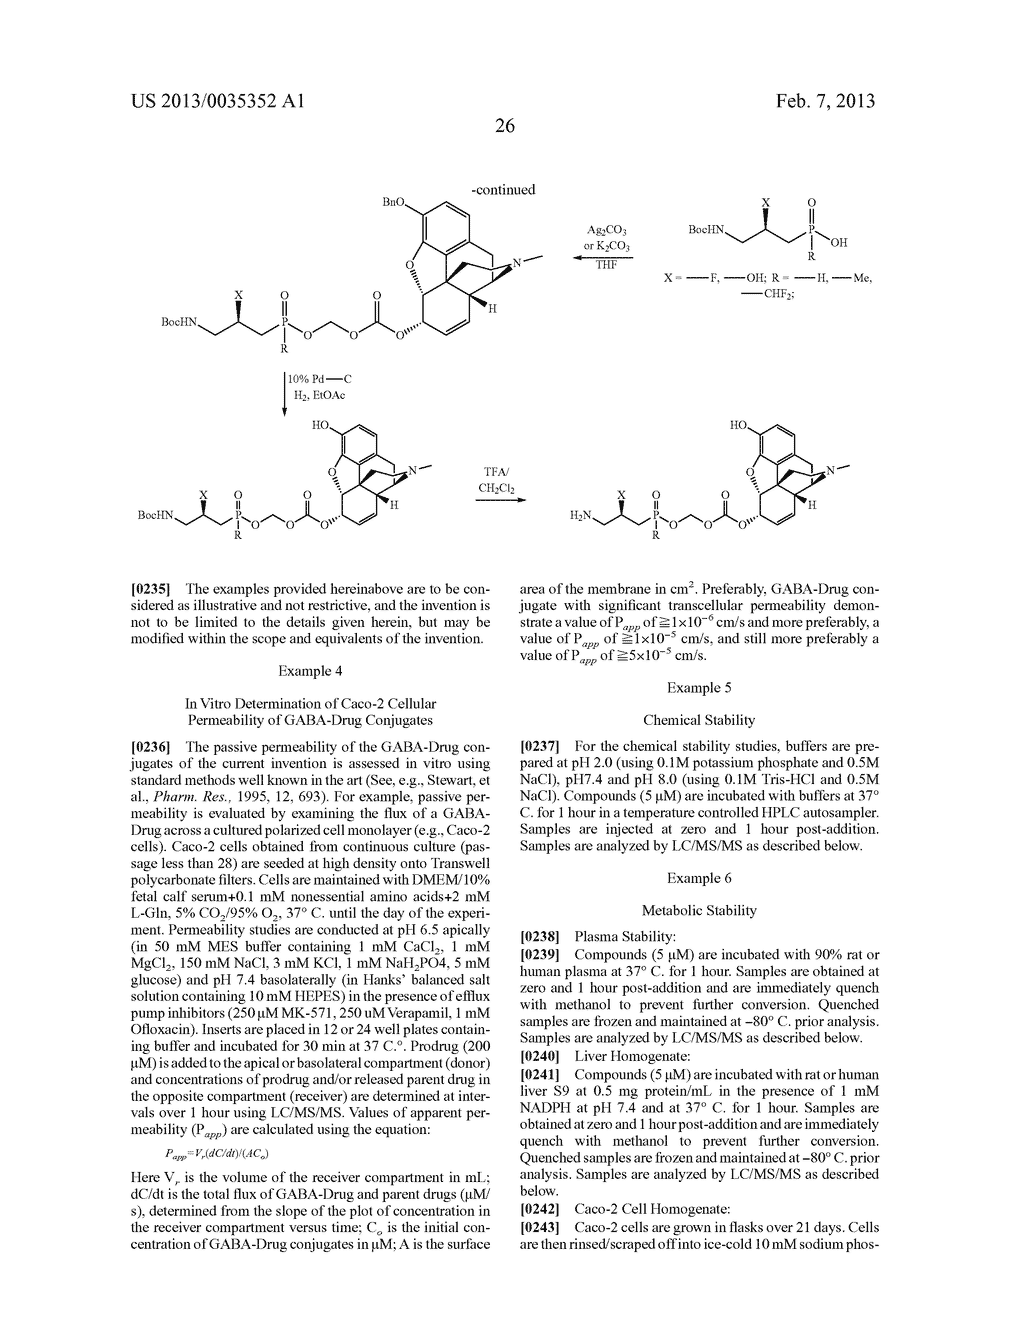 GABA CONJUGATES AND METHODS OF USE THEREOF - diagram, schematic, and image 27